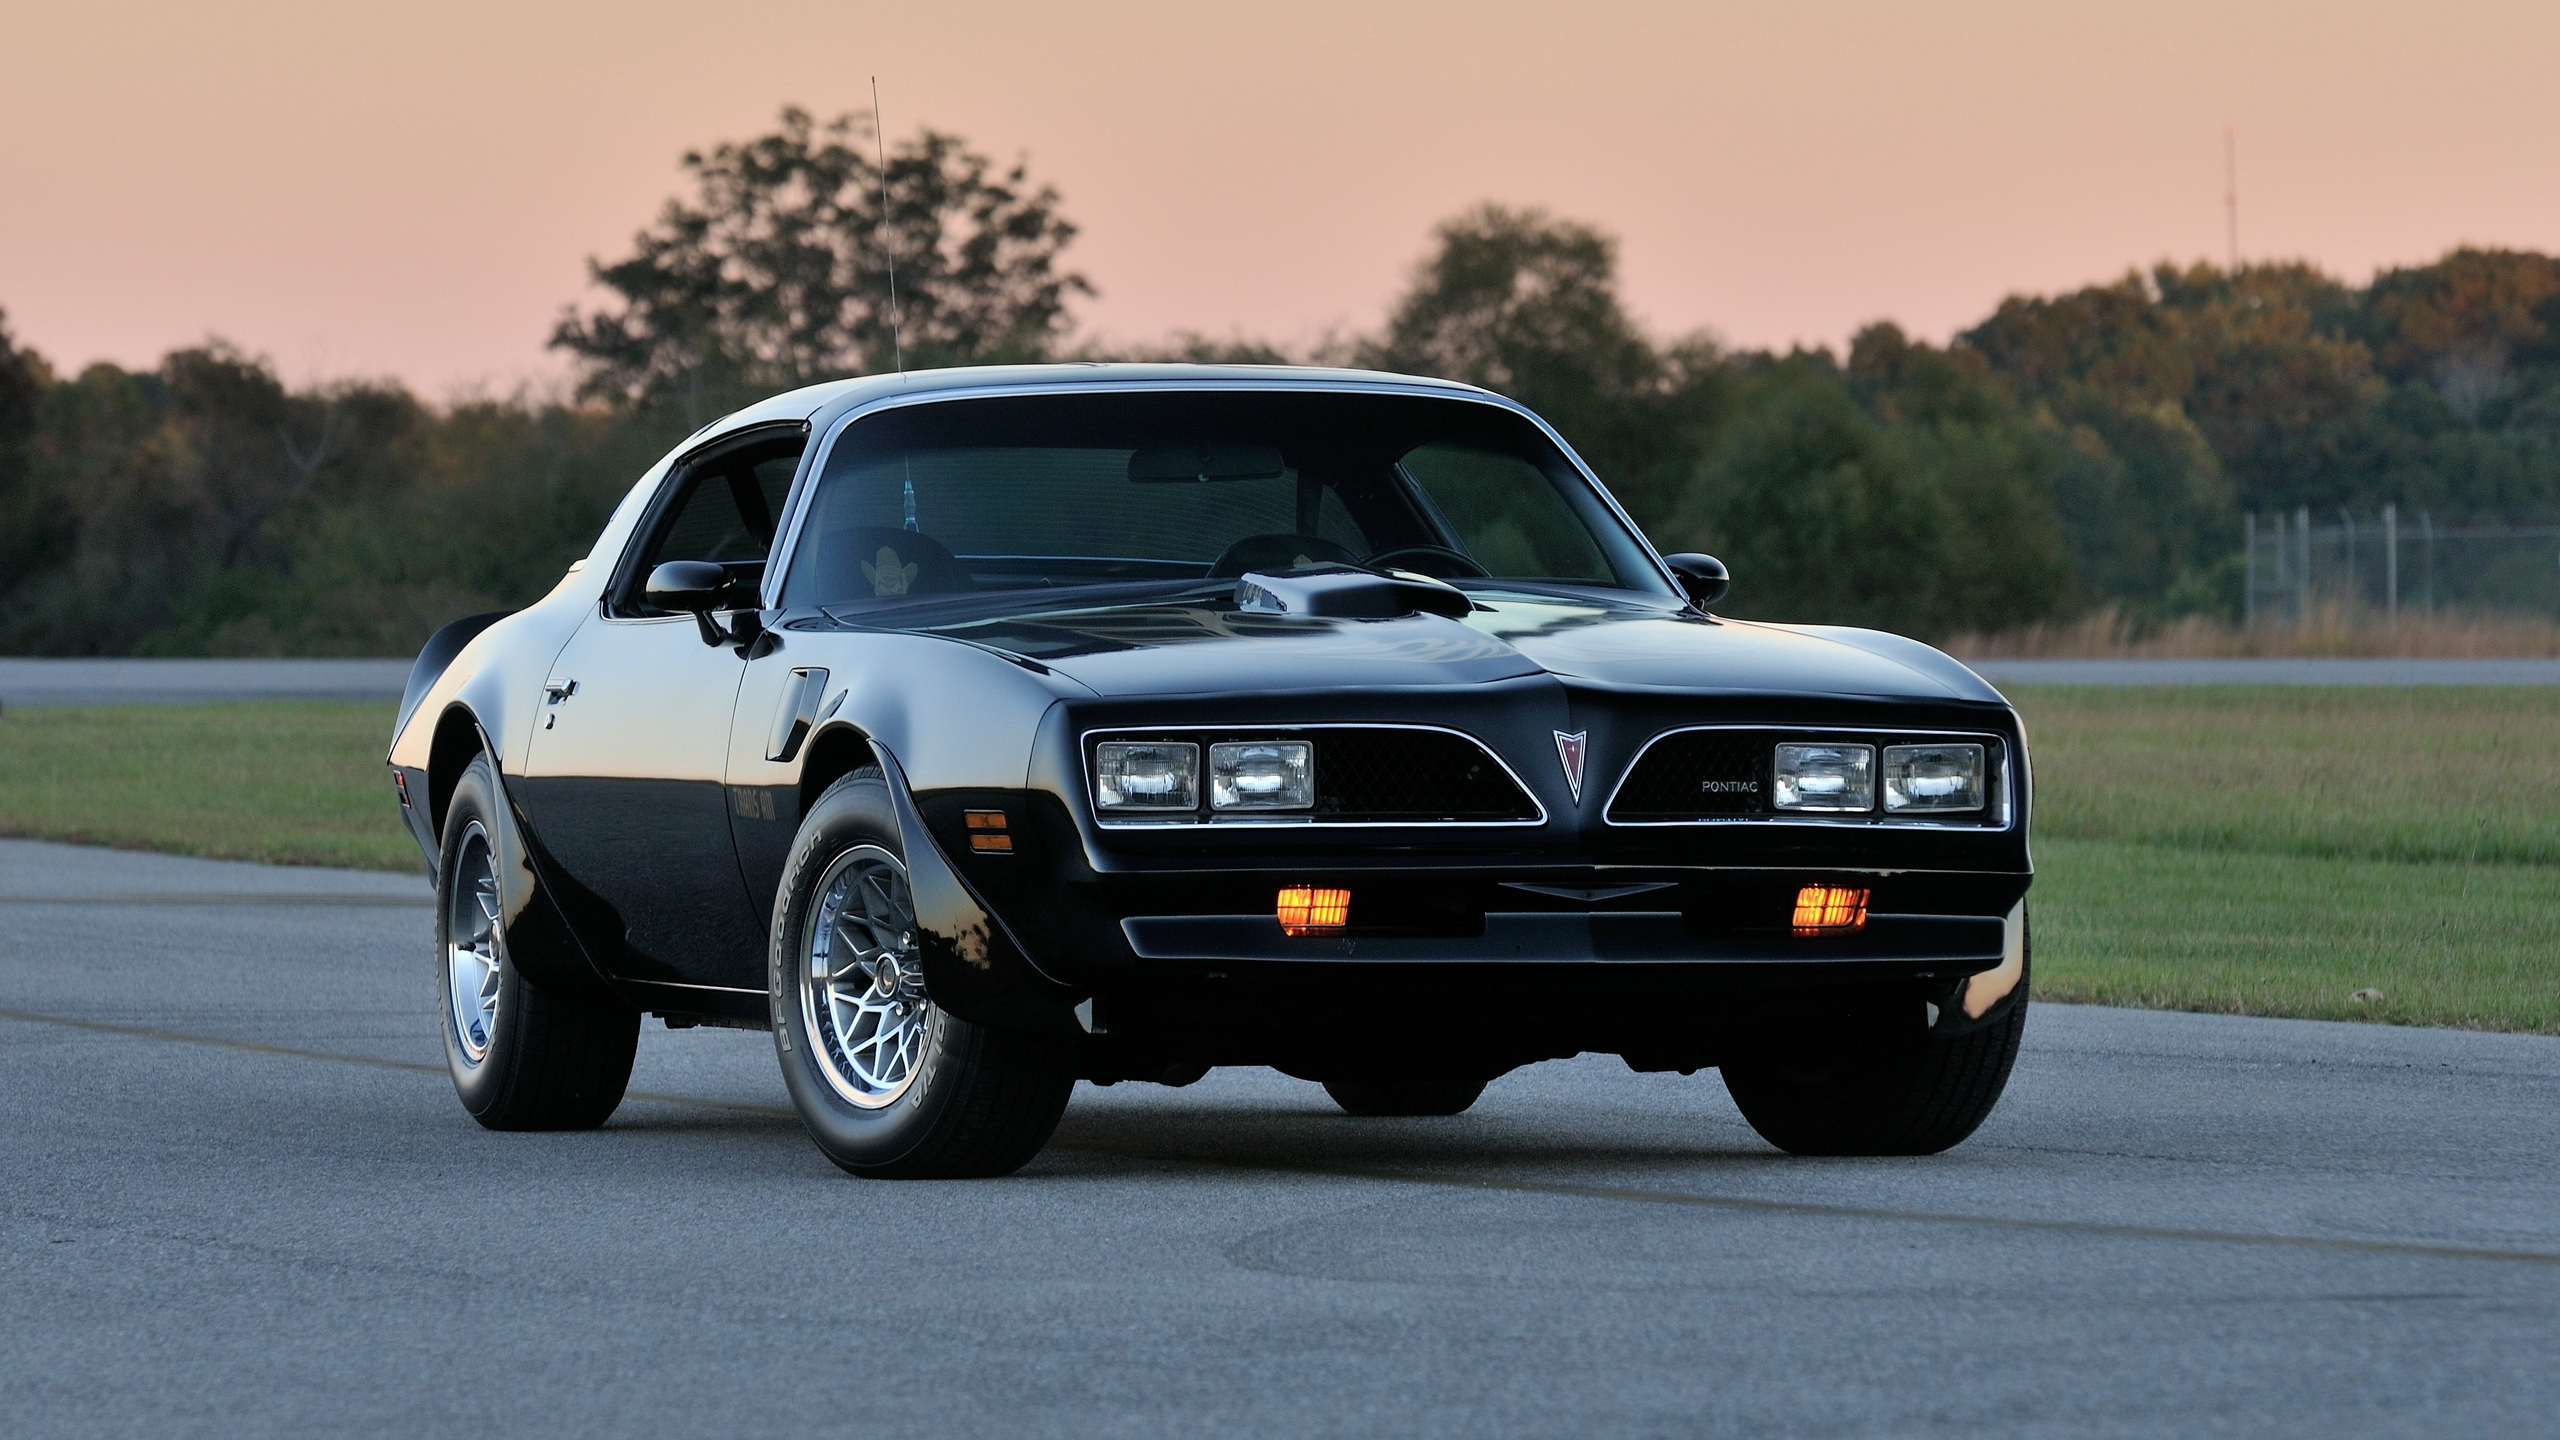 Download wallpaper 2560x1440 pontiac firebird trans am ws6 2560x1440